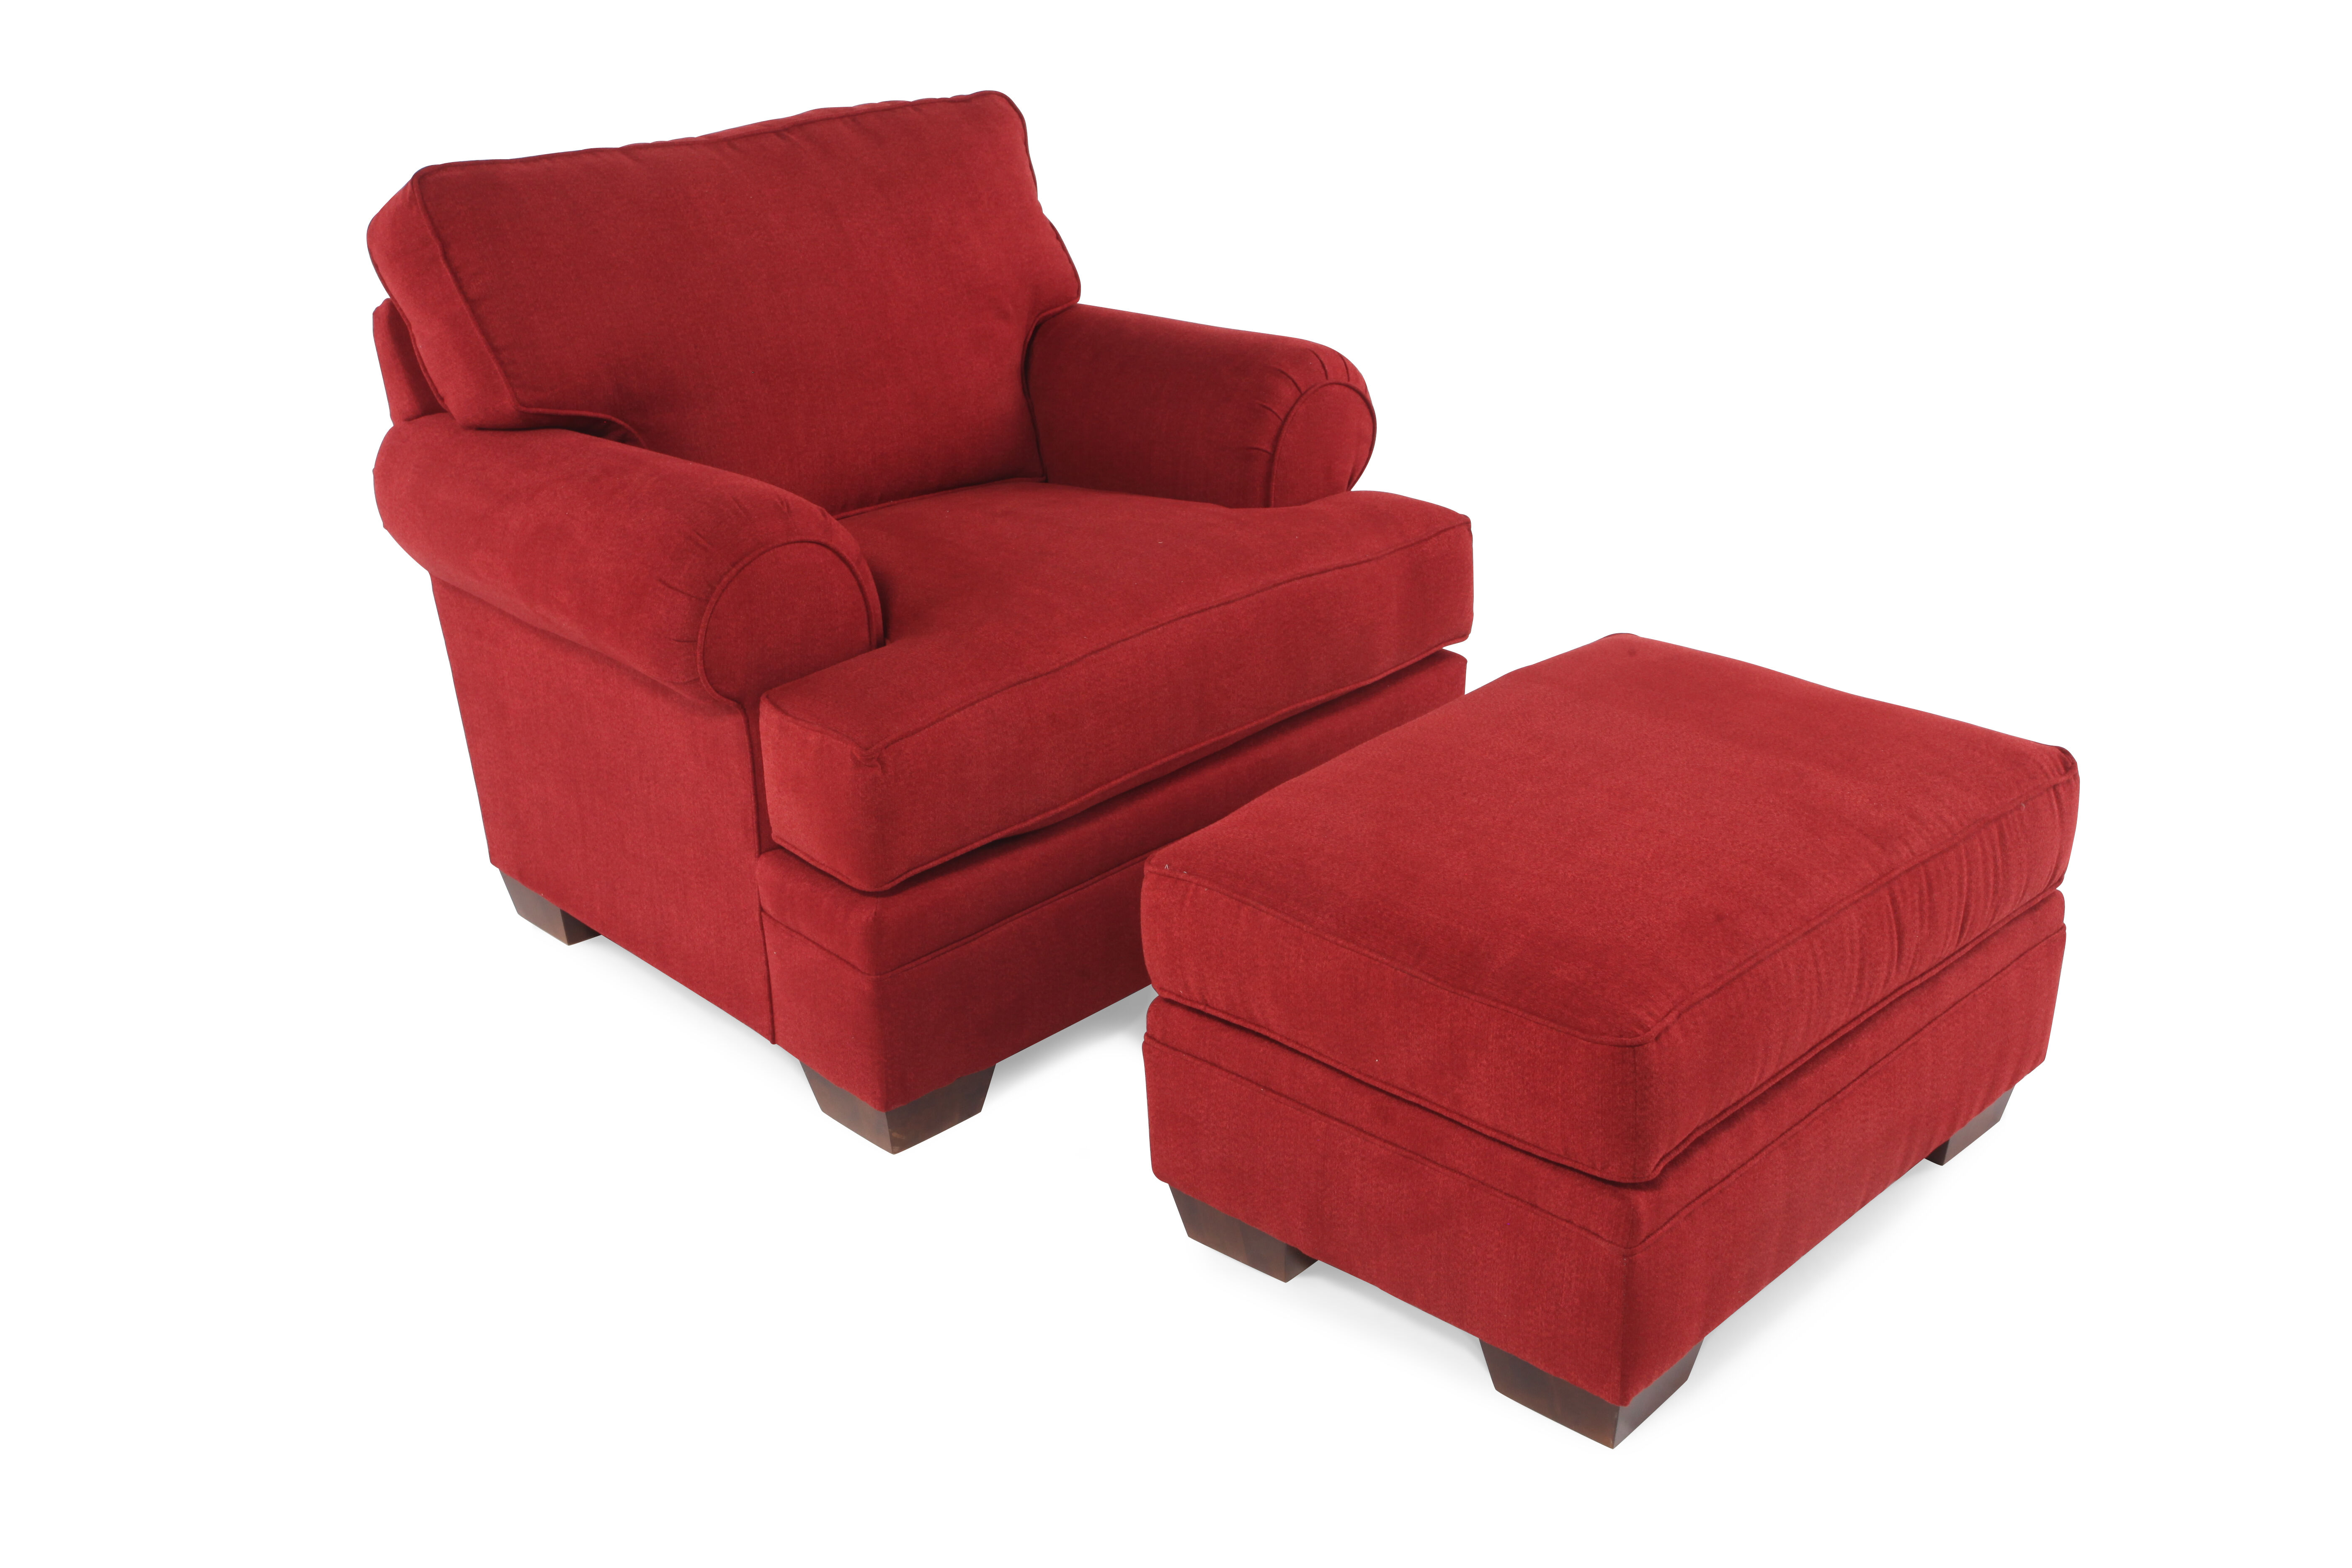 Delicieux Traditional Chair And Ottoman In Red